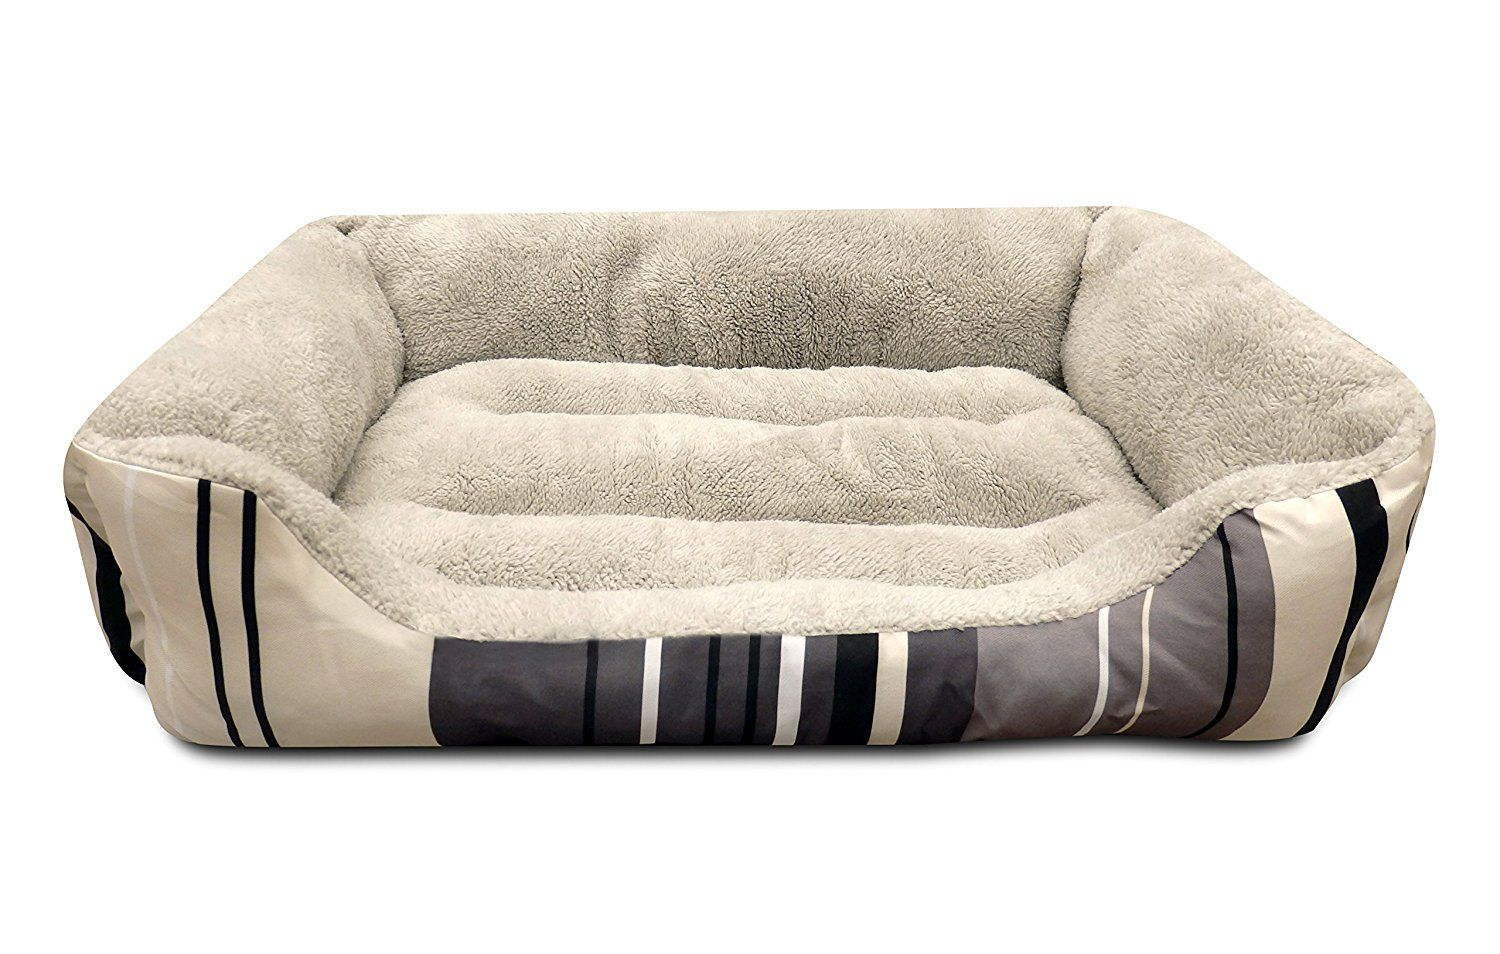 Pin By Dog Care Online On Dog Beds Dog Bed Grey Dog Dog Store